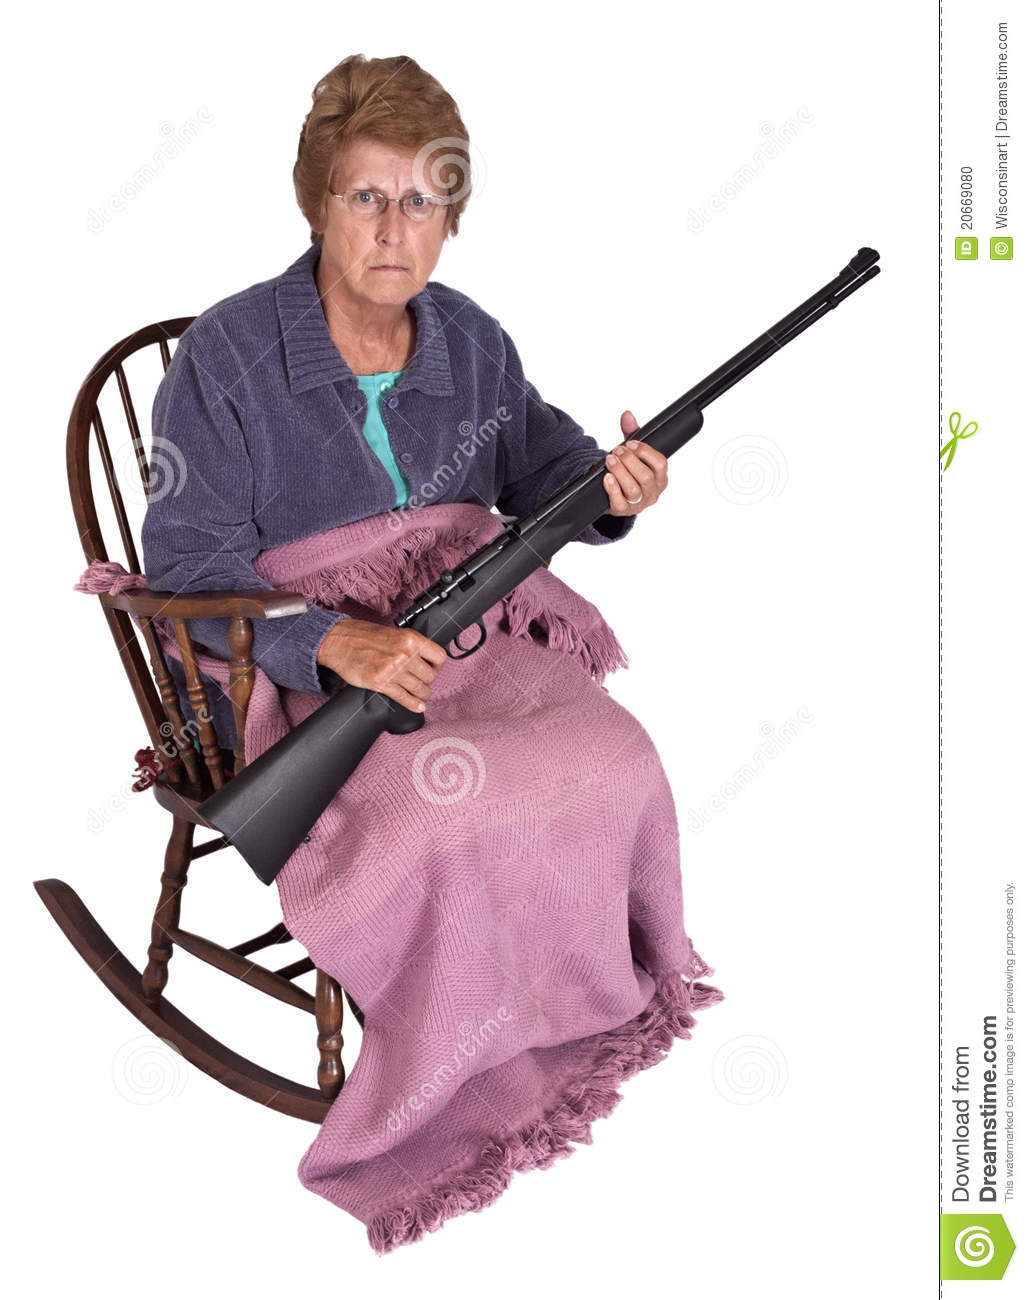 online retailer c12df a011f Funny Trailer Park Trash Granny With Gun Humor Stock Photo ...